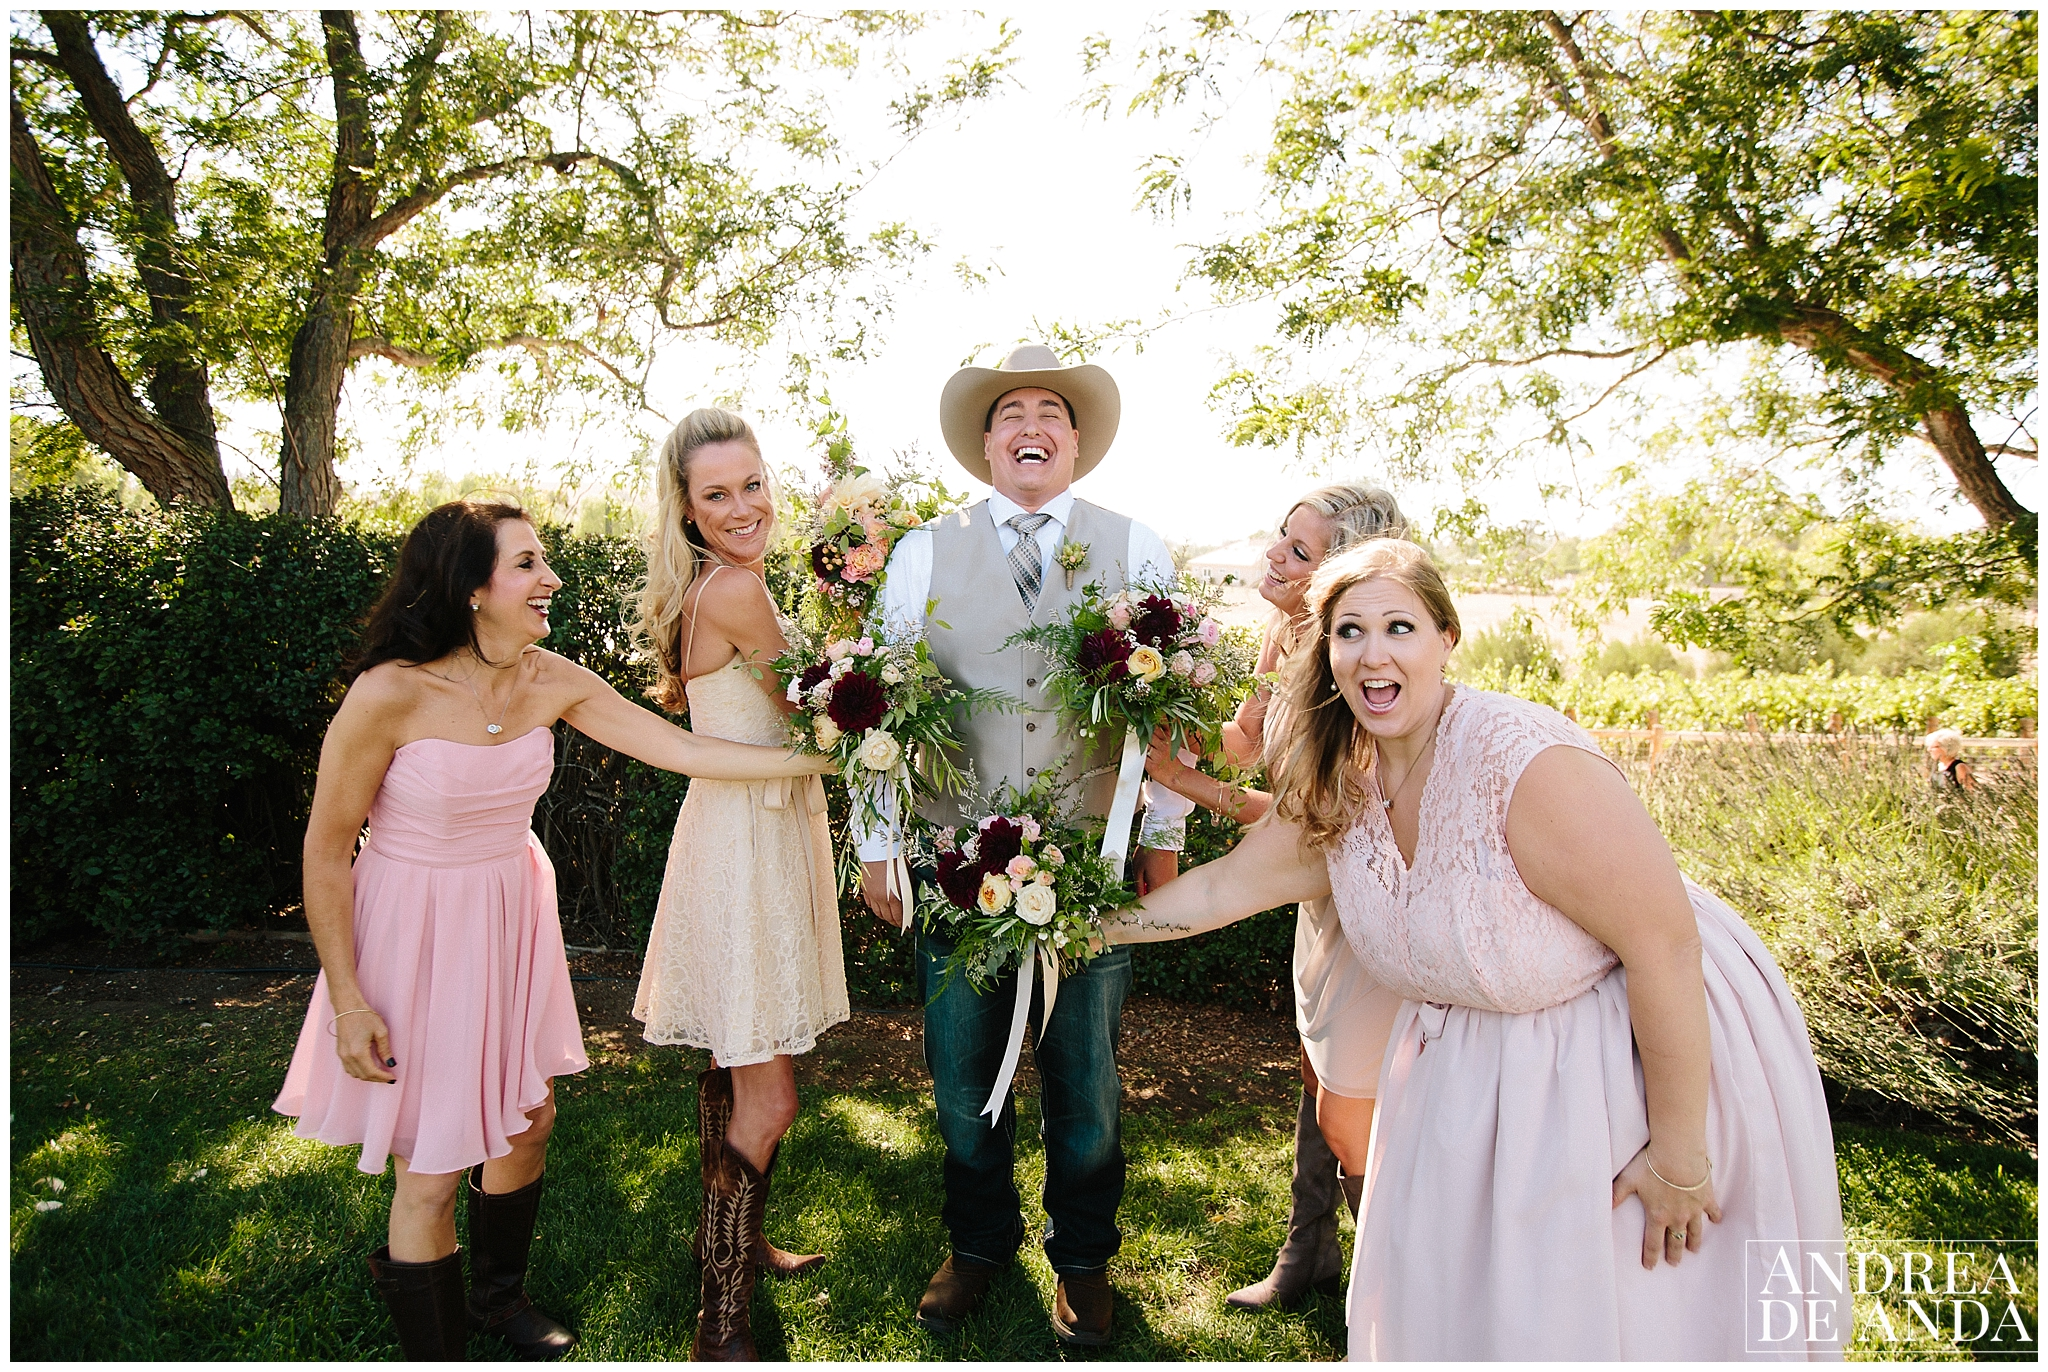 Santa Ynez Valley back yard wedding_Andrea de Anda Photography__0026.jpg